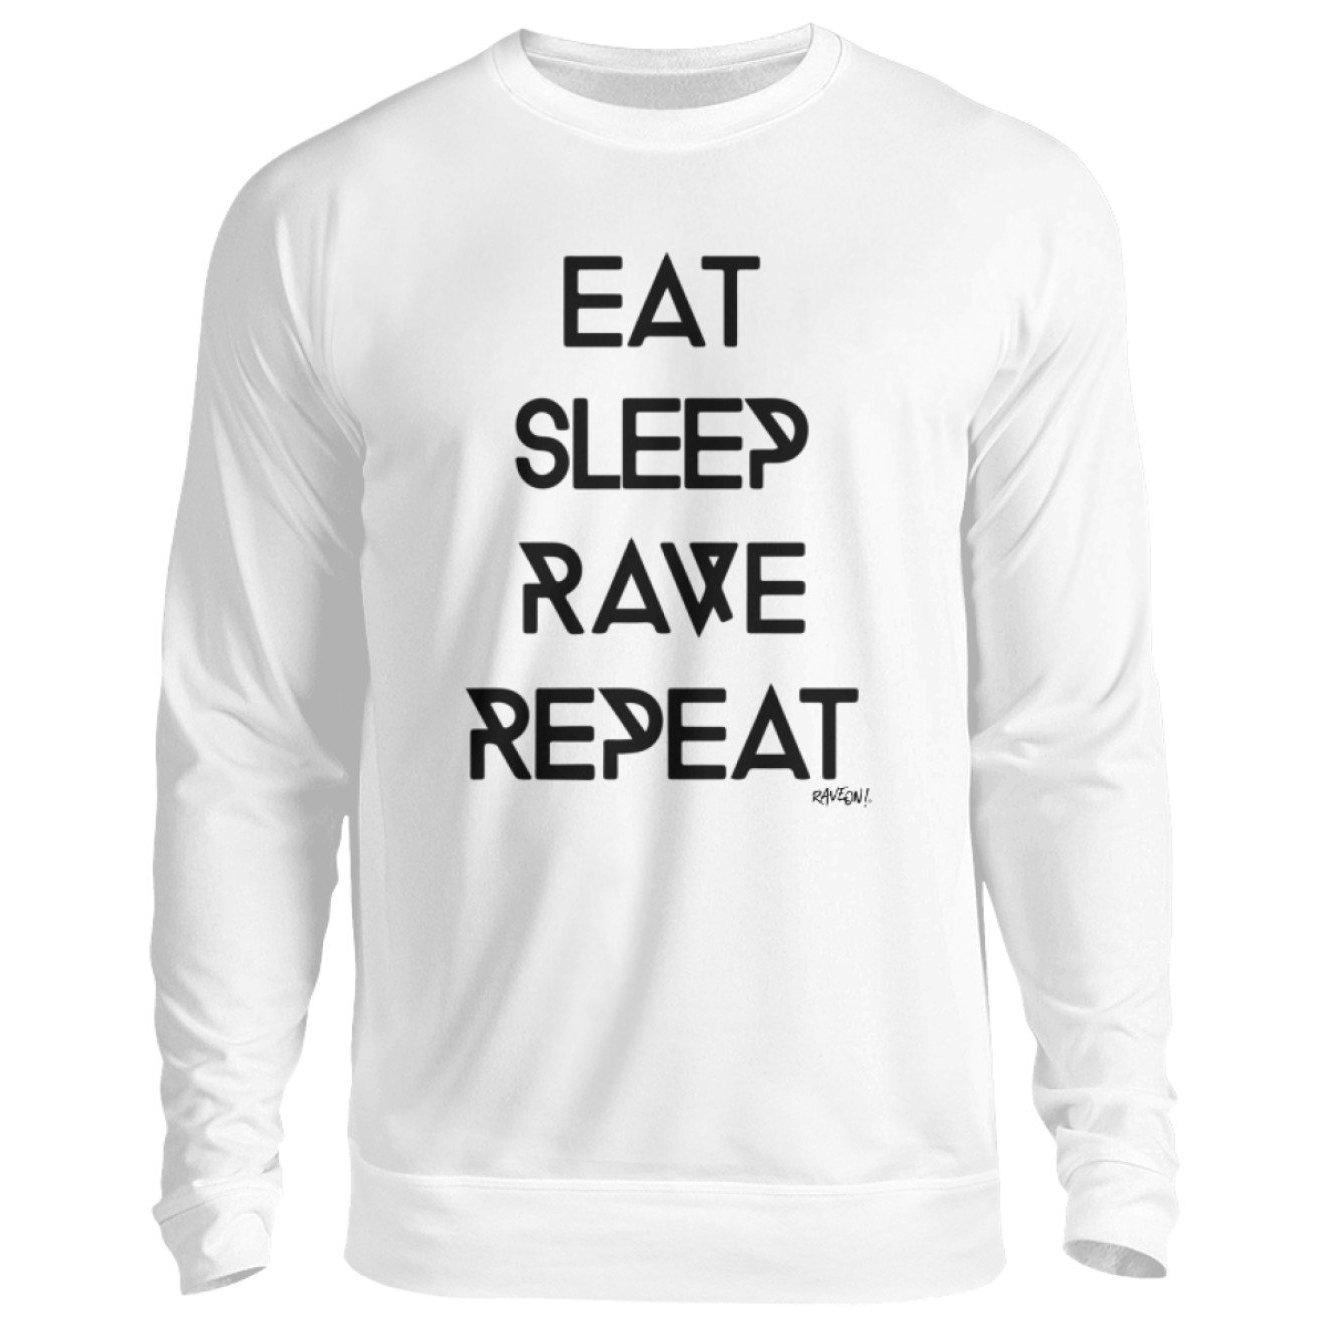 Eat Sleep Rave Repeat - Rave On!® - Unisex Pullover Unisex Sweatshirt Arctic White / S - Rave On!® der Club & Techno Szene Shop für Coole Junge Mode Streetwear Style & Fashion Outfits + Sexy Festival 420 Stuff